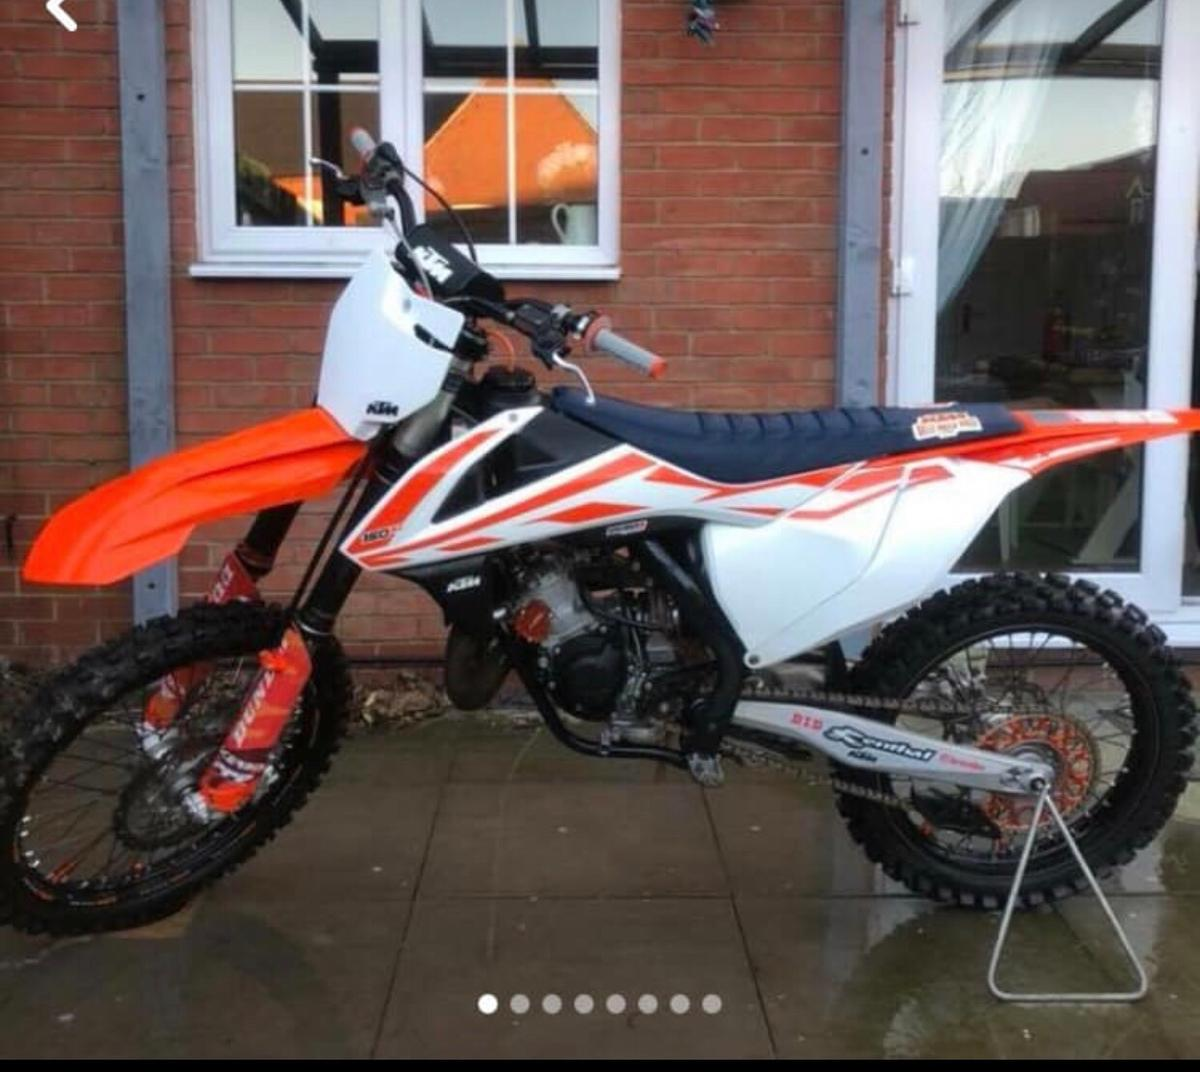 Ktm 150 sx 2017 in DY5 Dudley for £3,500 00 for sale - Shpock